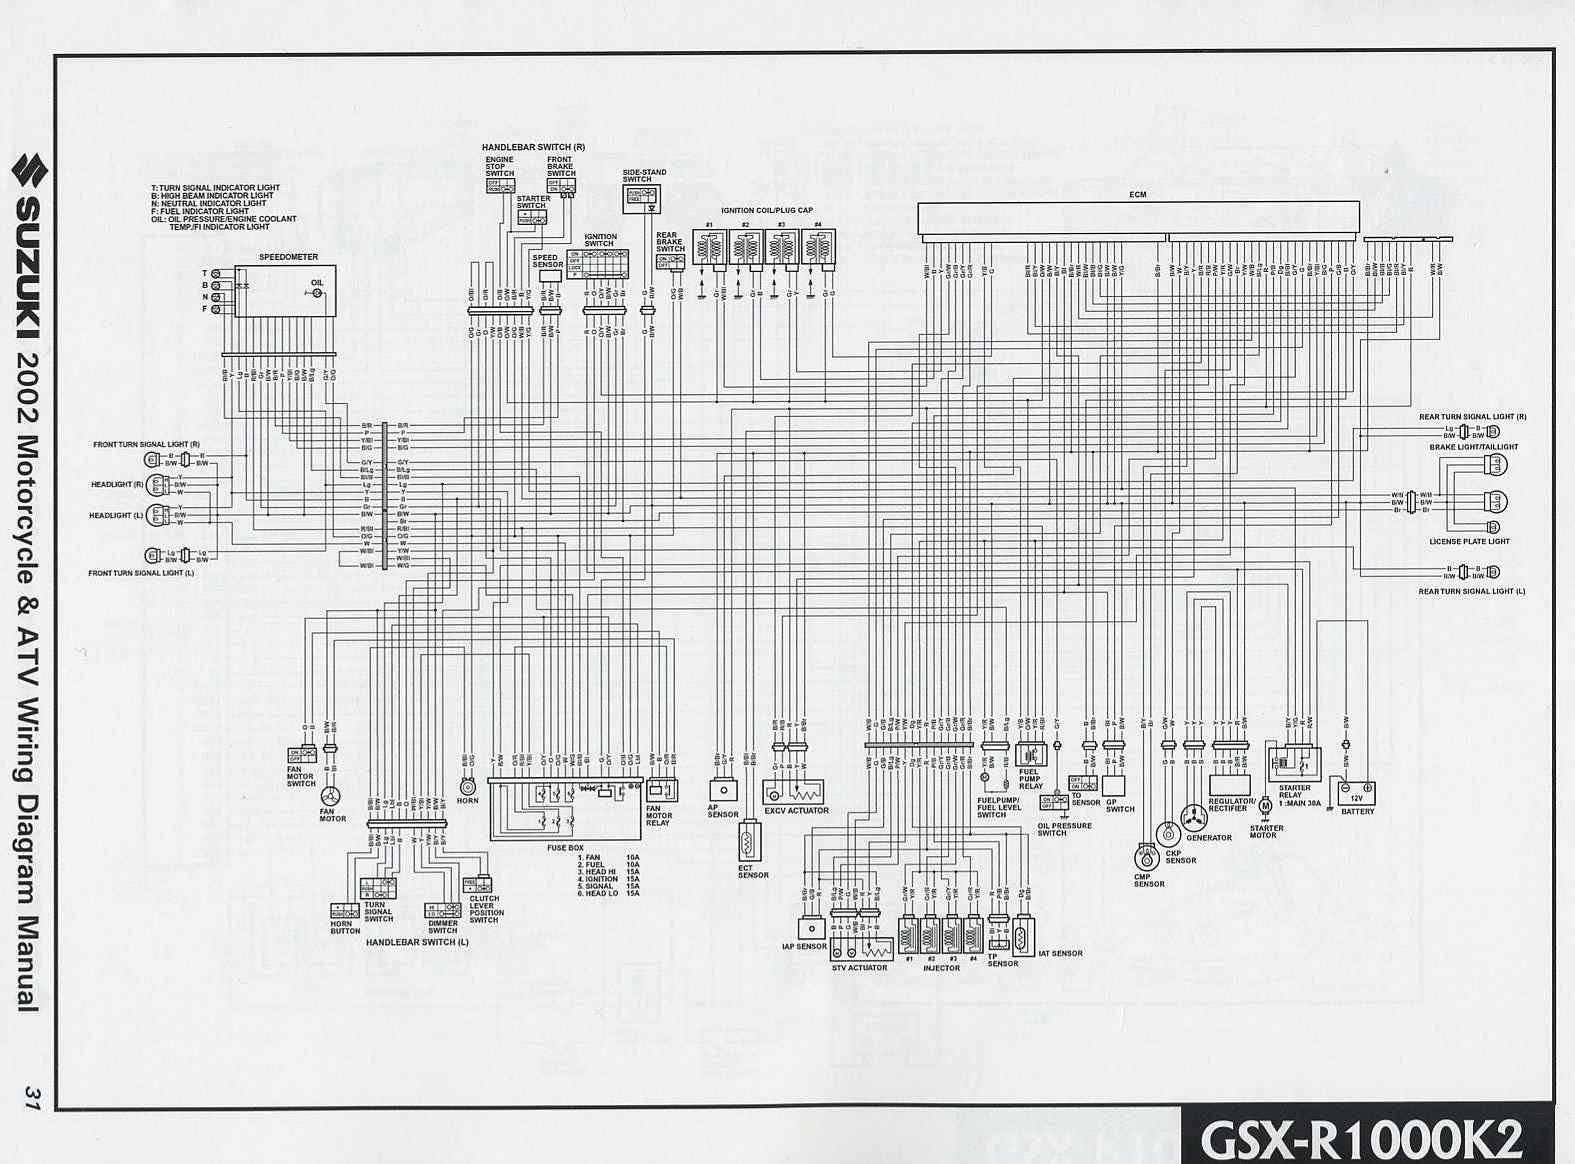 2006 gsxr 1000 wiring diagram 2006 wiring diagrams online wiring diagram for 2007 gsxr 600 the wiring diagram